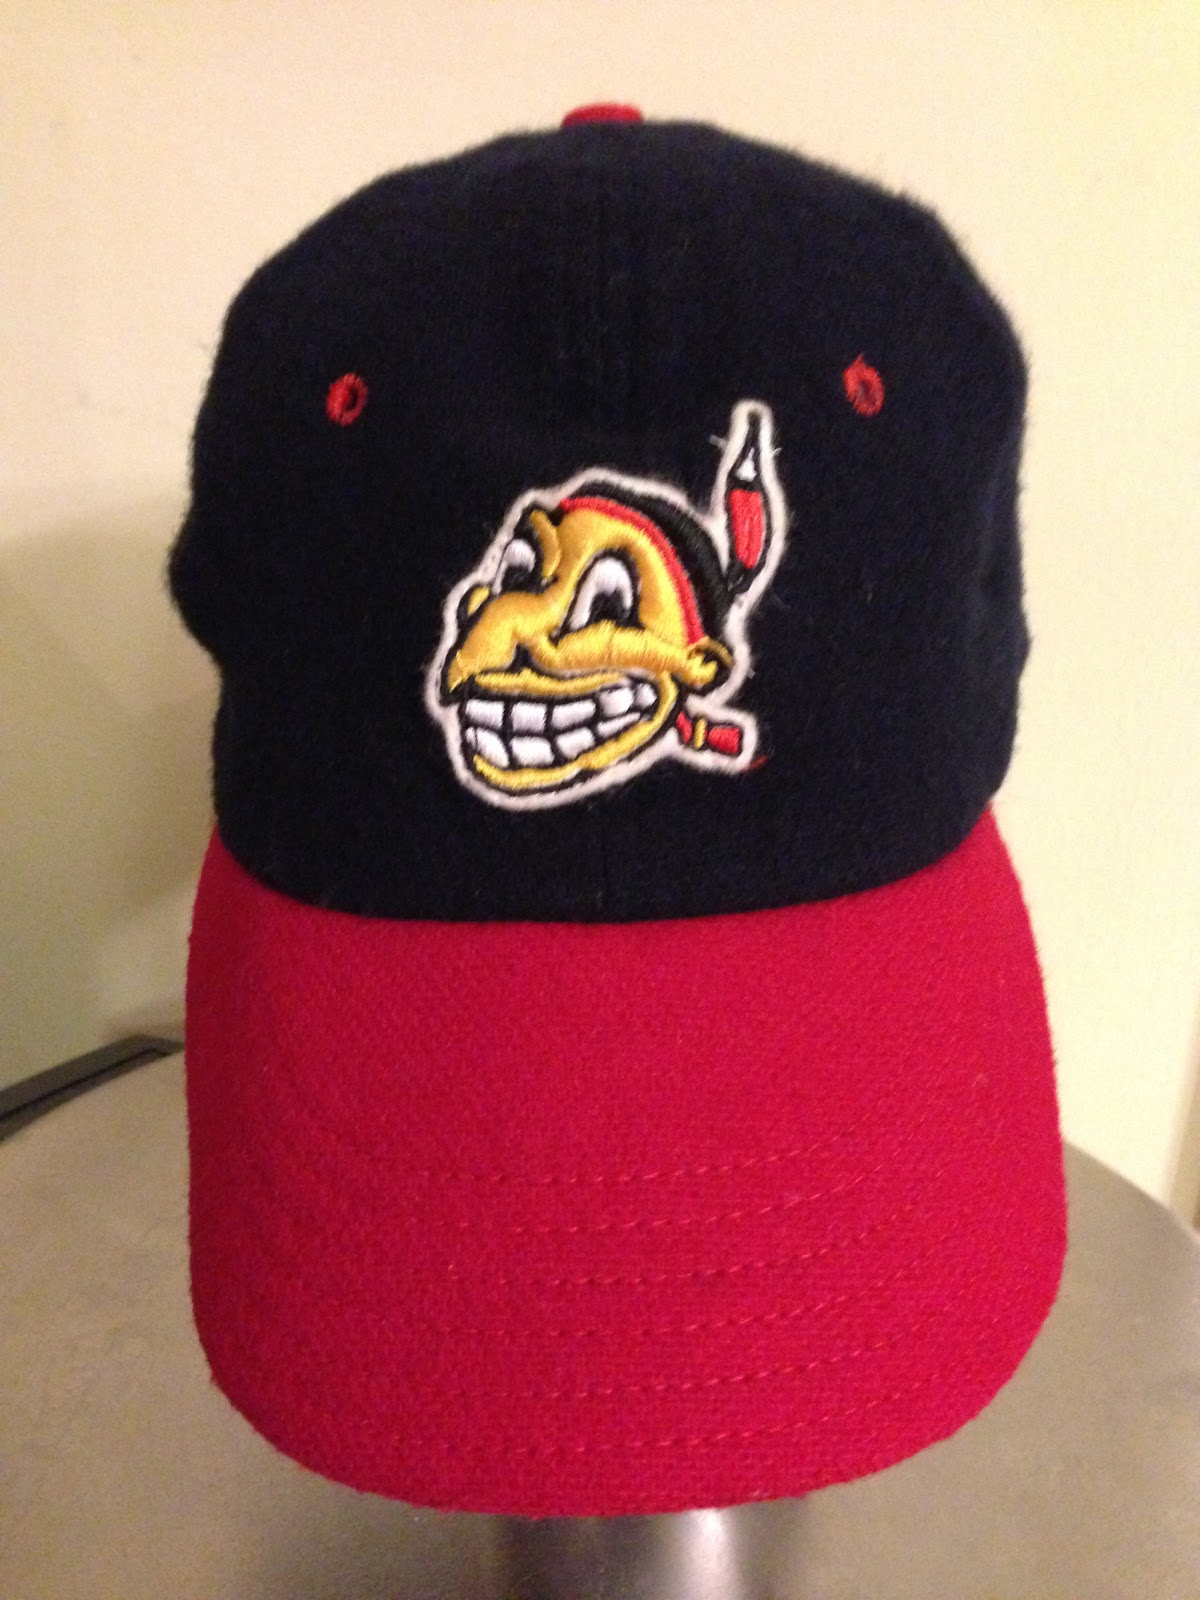 Cooperstown Ball Cap Co Caps 1948 Cleveland Indians